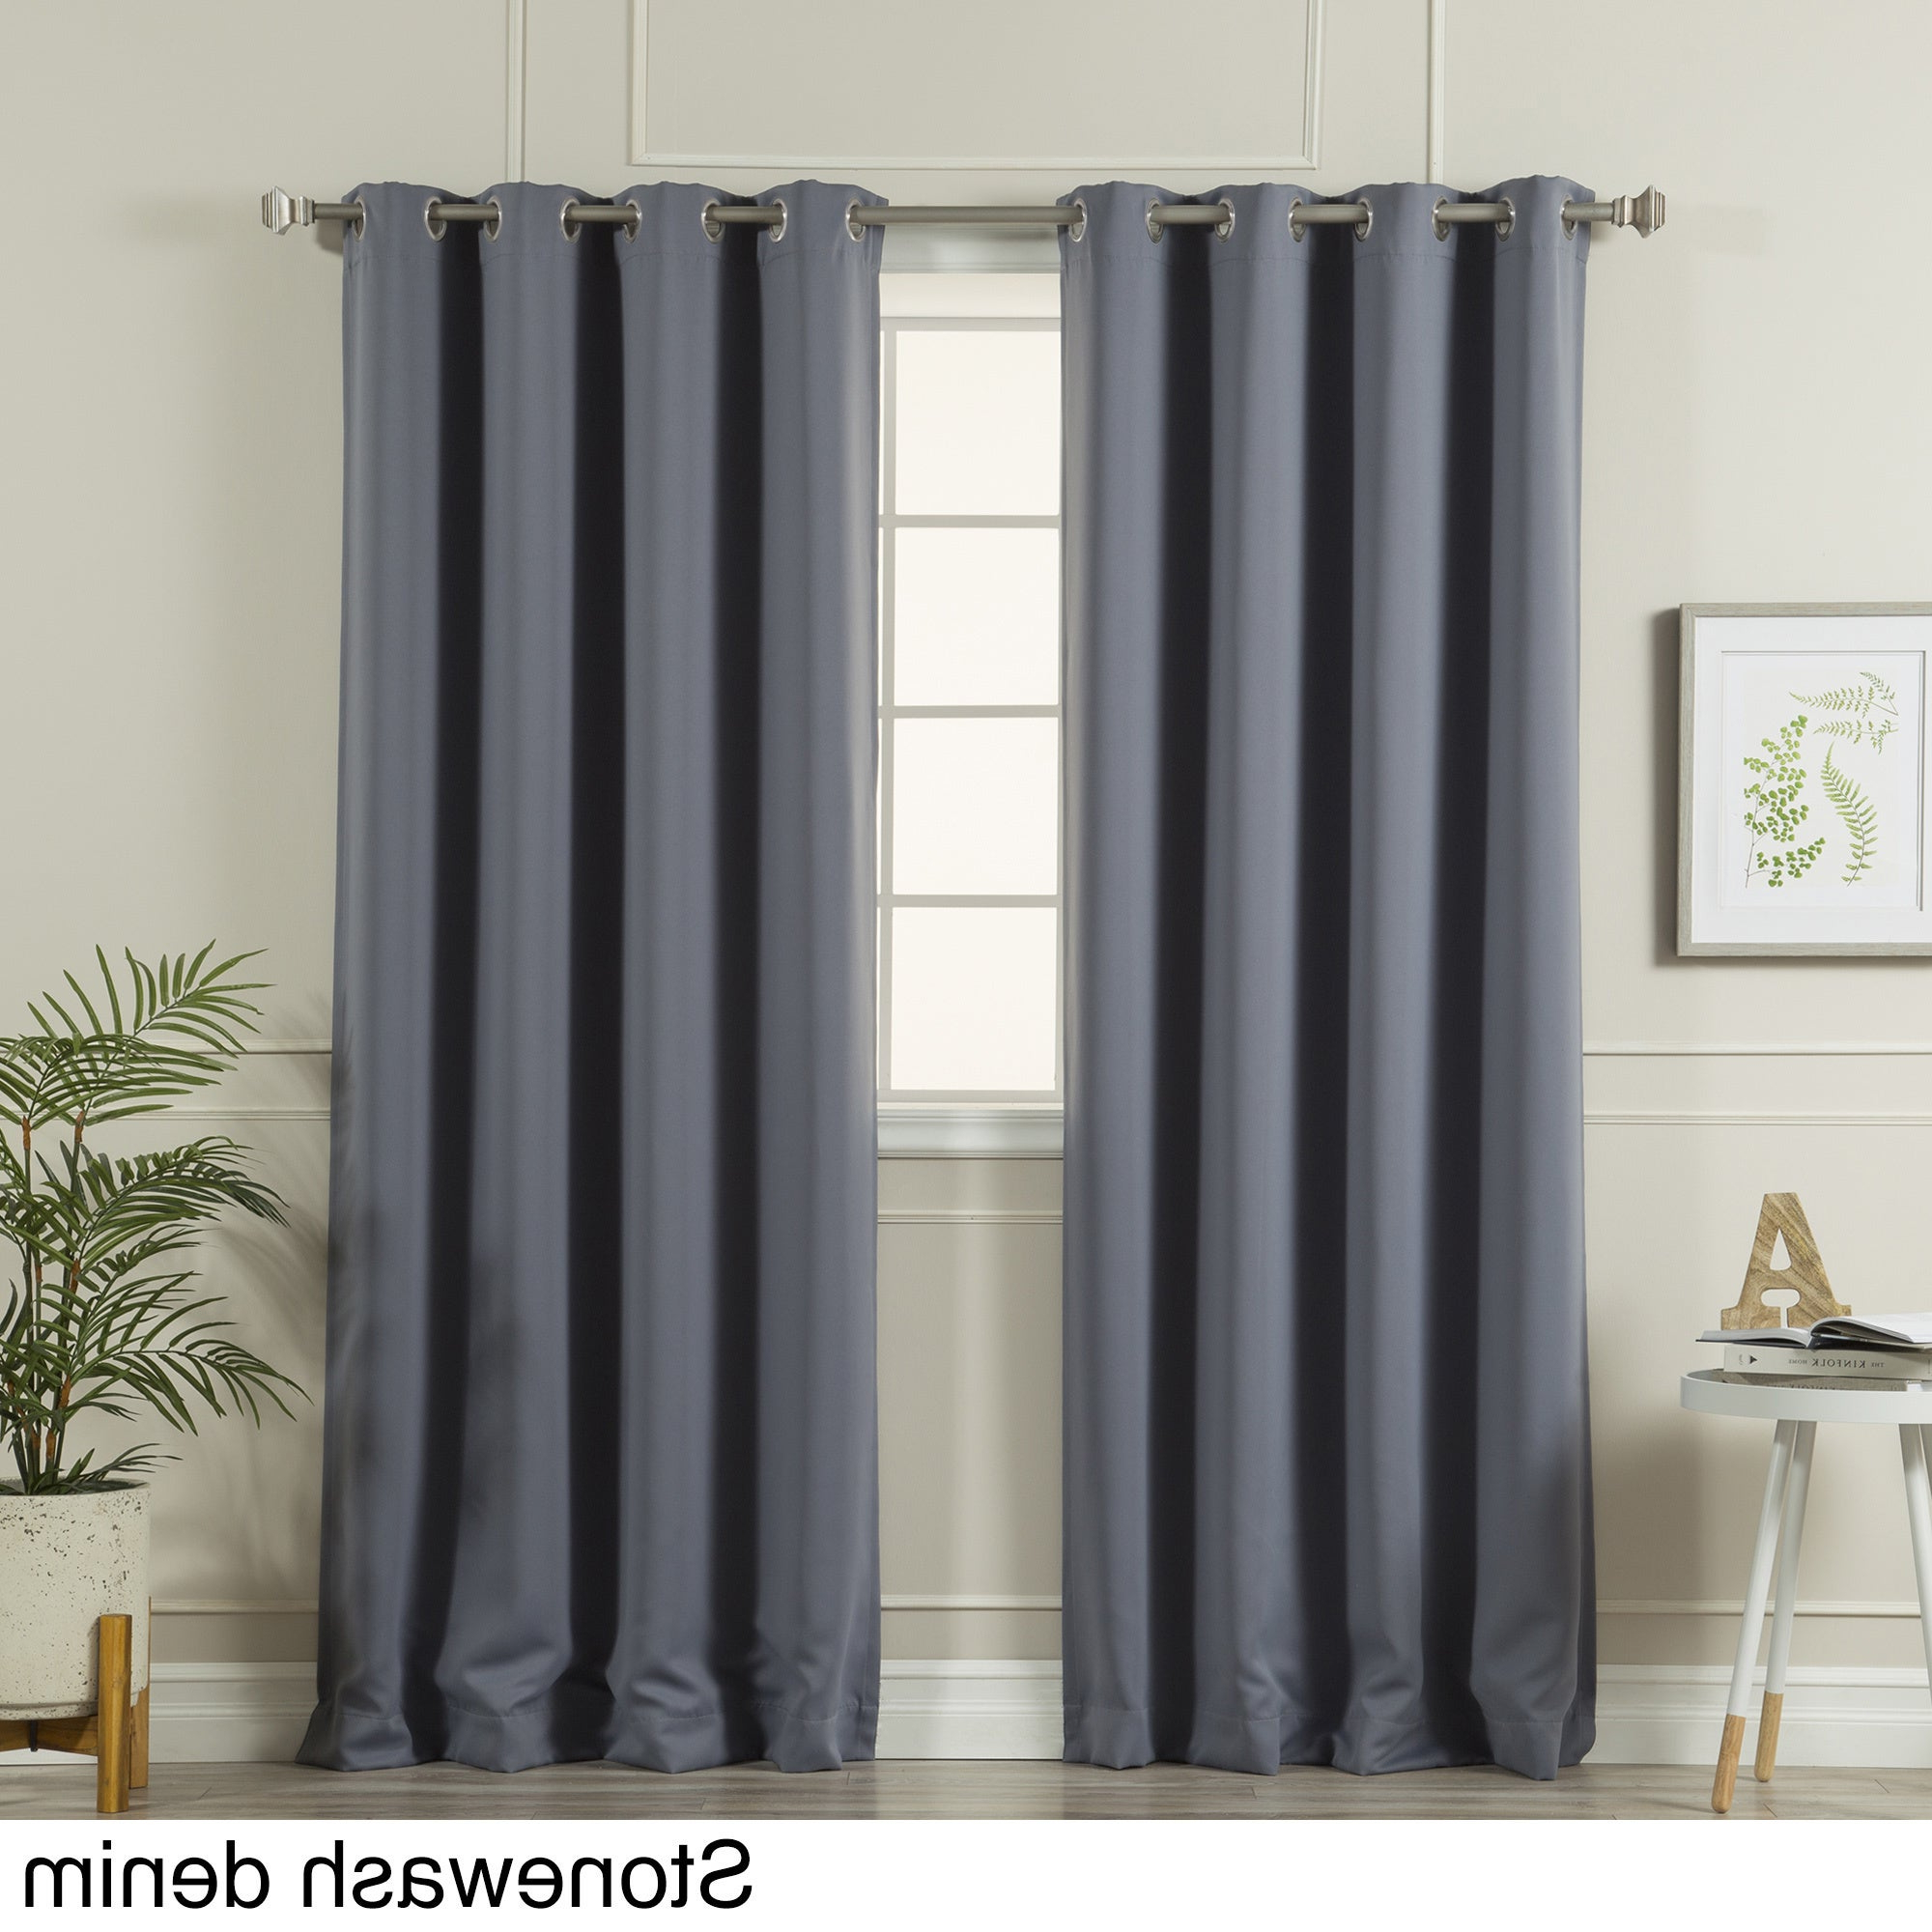 2021 Aurora Home Silvertone Grommet Top Thermal Insulated Blackout Curtain Panel Pair Inside Silvertone Grommet Thermal Insulated Blackout Curtain Panel Pairs (View 8 of 20)